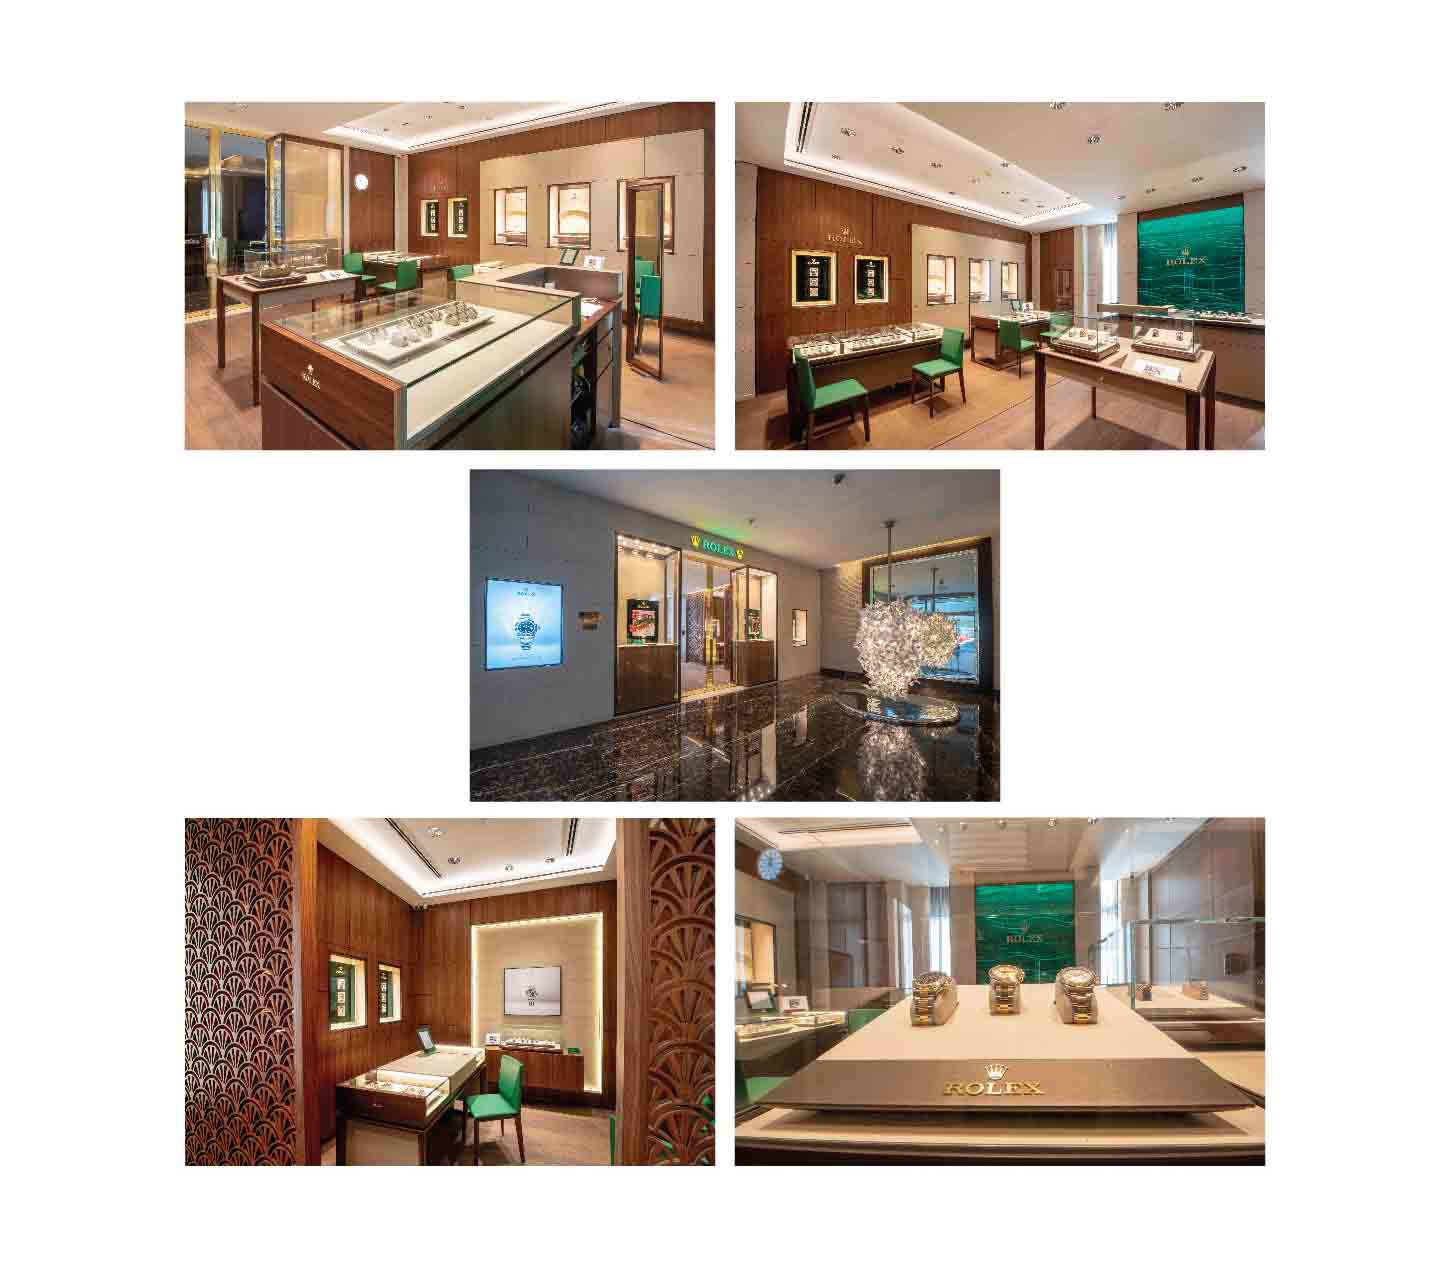 Khimji's Watches Rolex Showroom in India